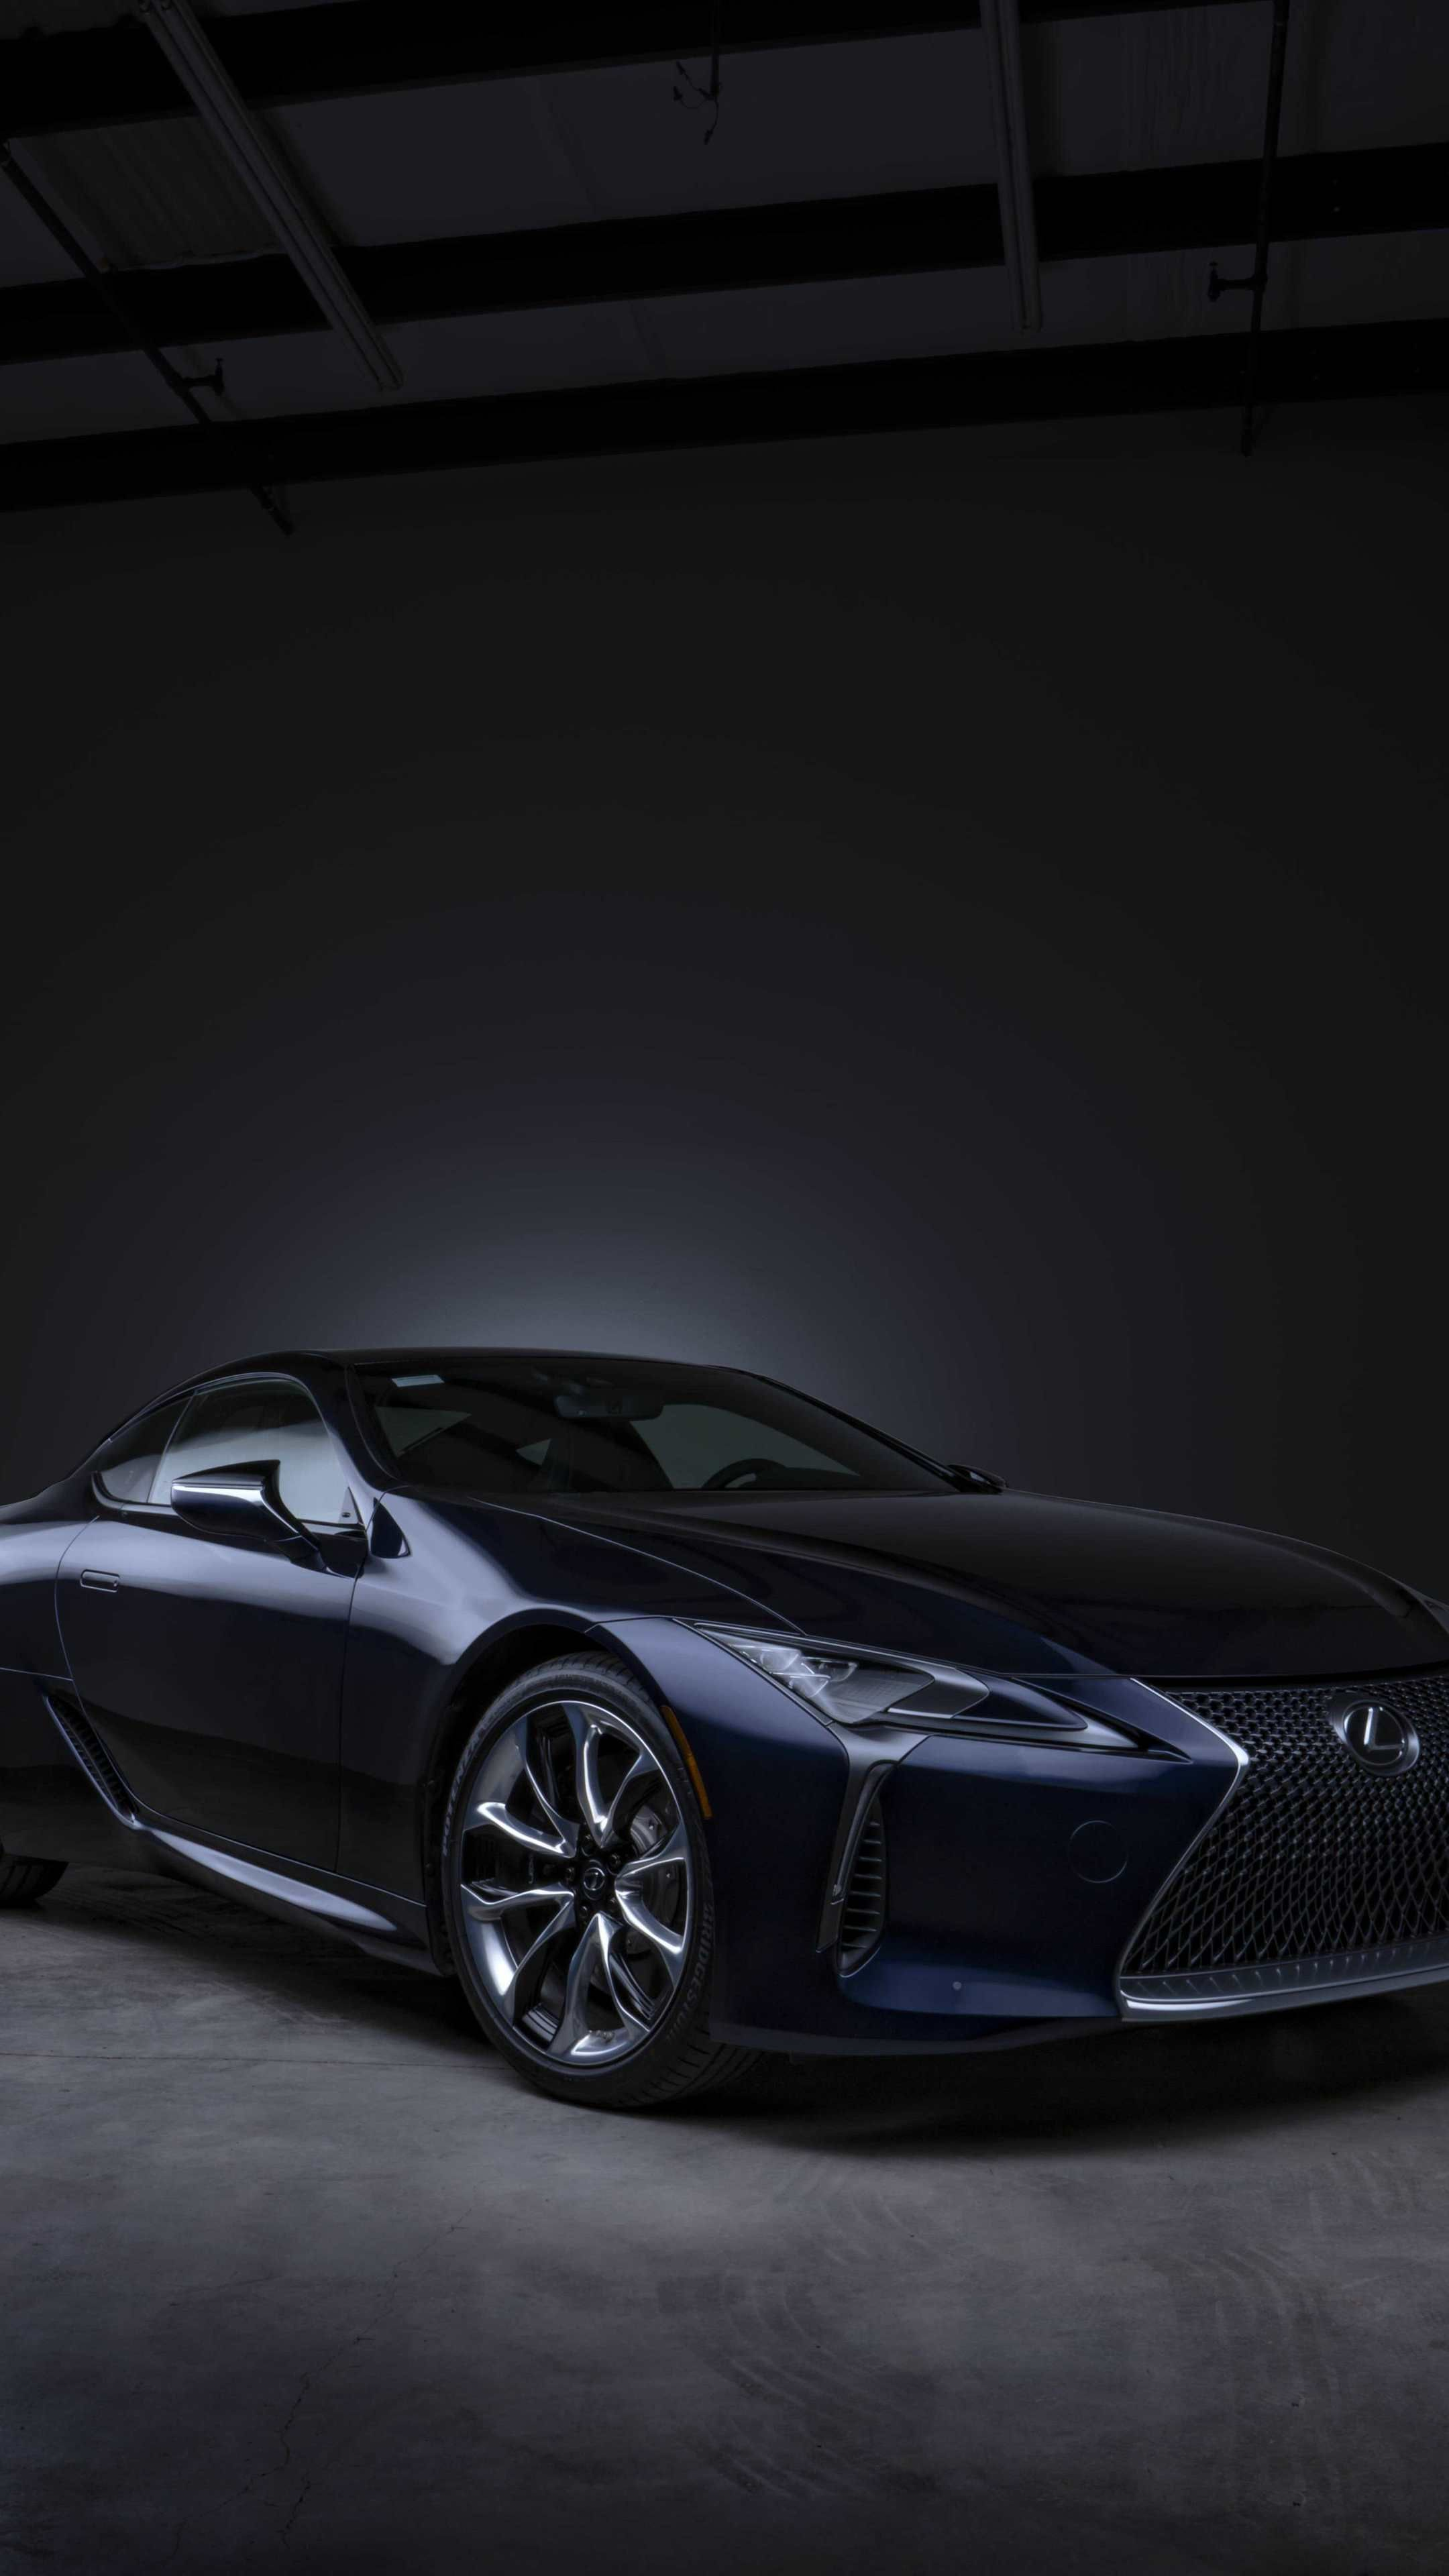 Cars Lexus Black Panther Lc 500 Photoshoot Wallpapers Cars